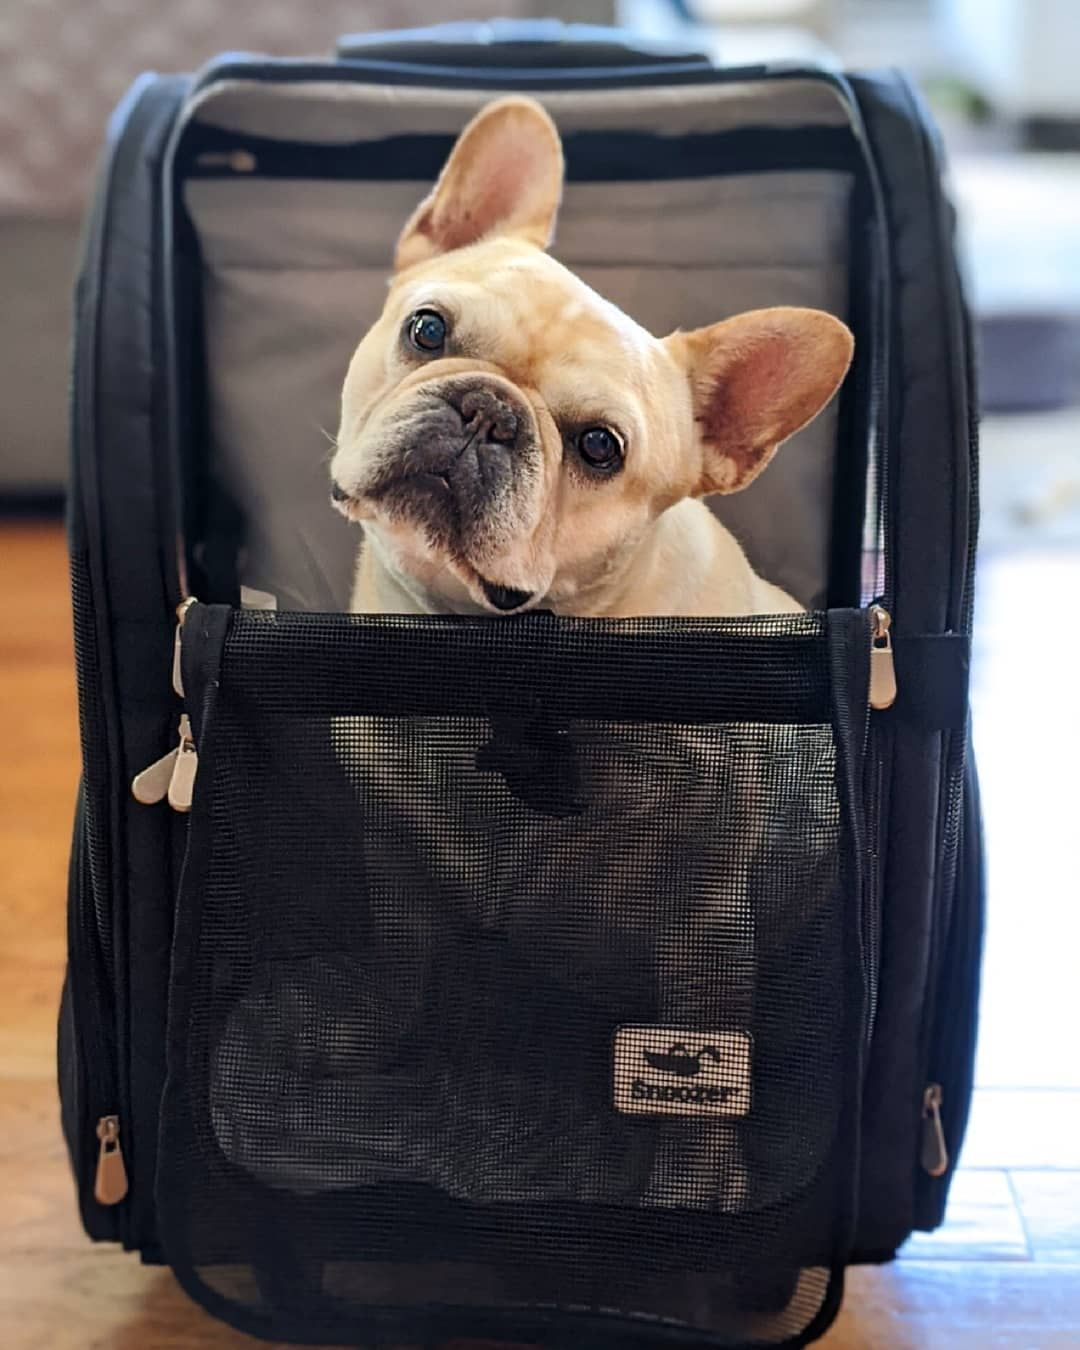 Pin by Barbara Papile on Frenchies in 2020 Dog backpack